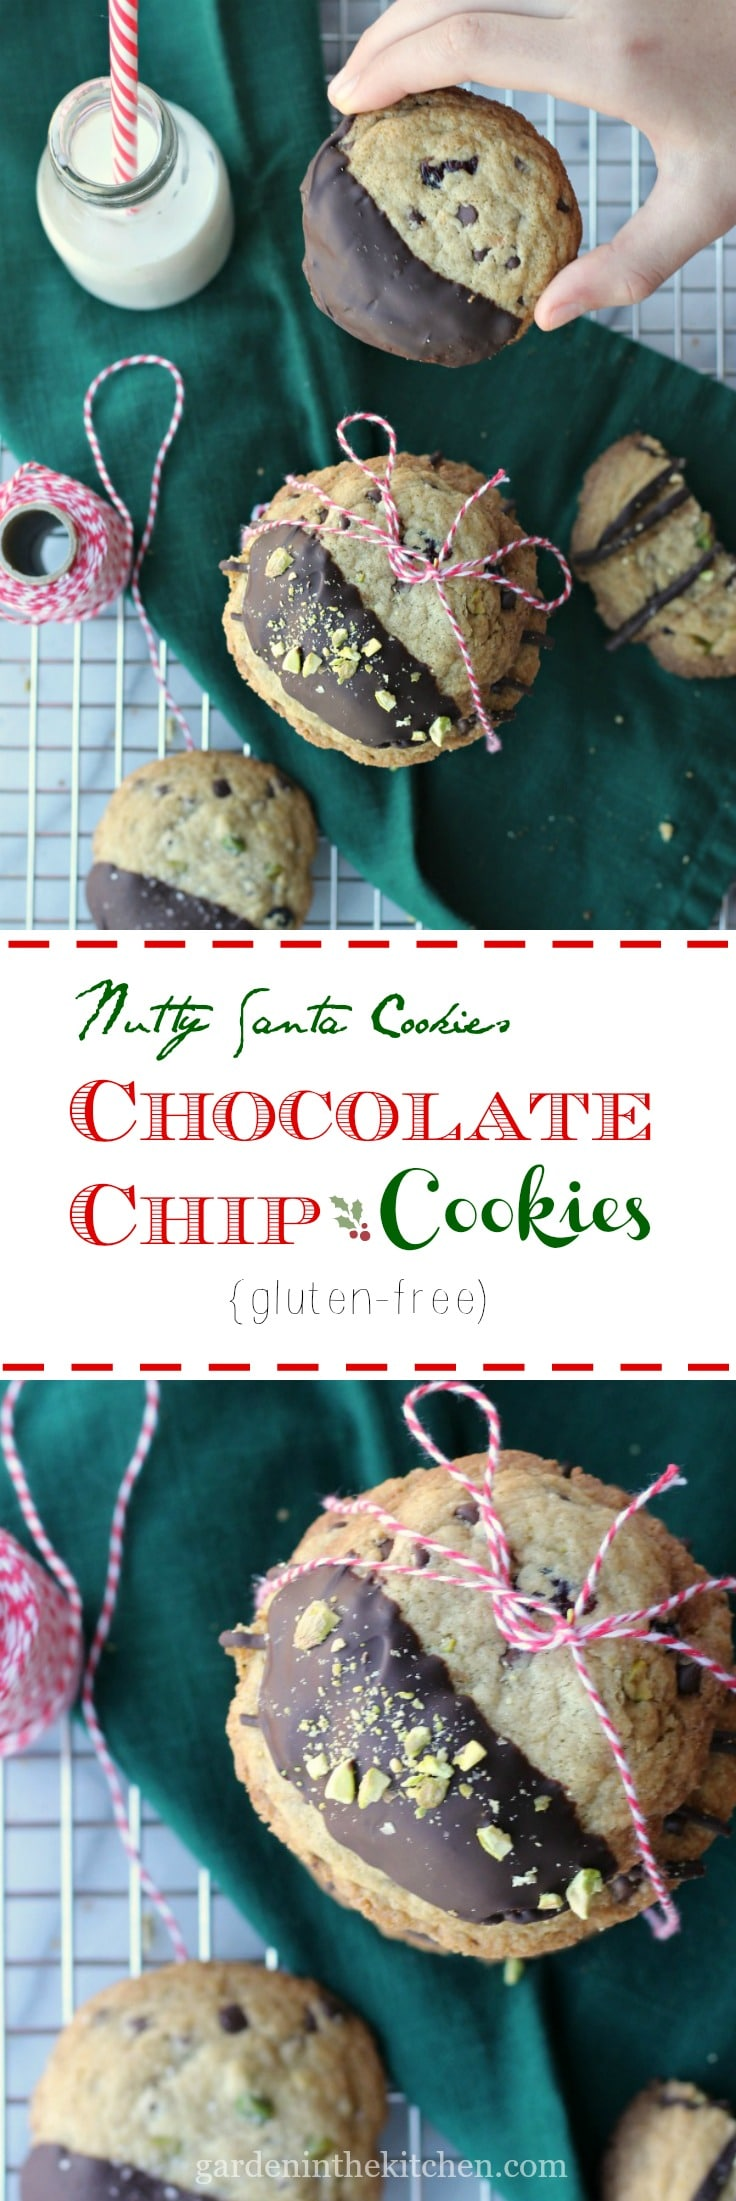 Nutty Chocolate Chip Cookies (Gluten-free) | gardeninthekitchen.com